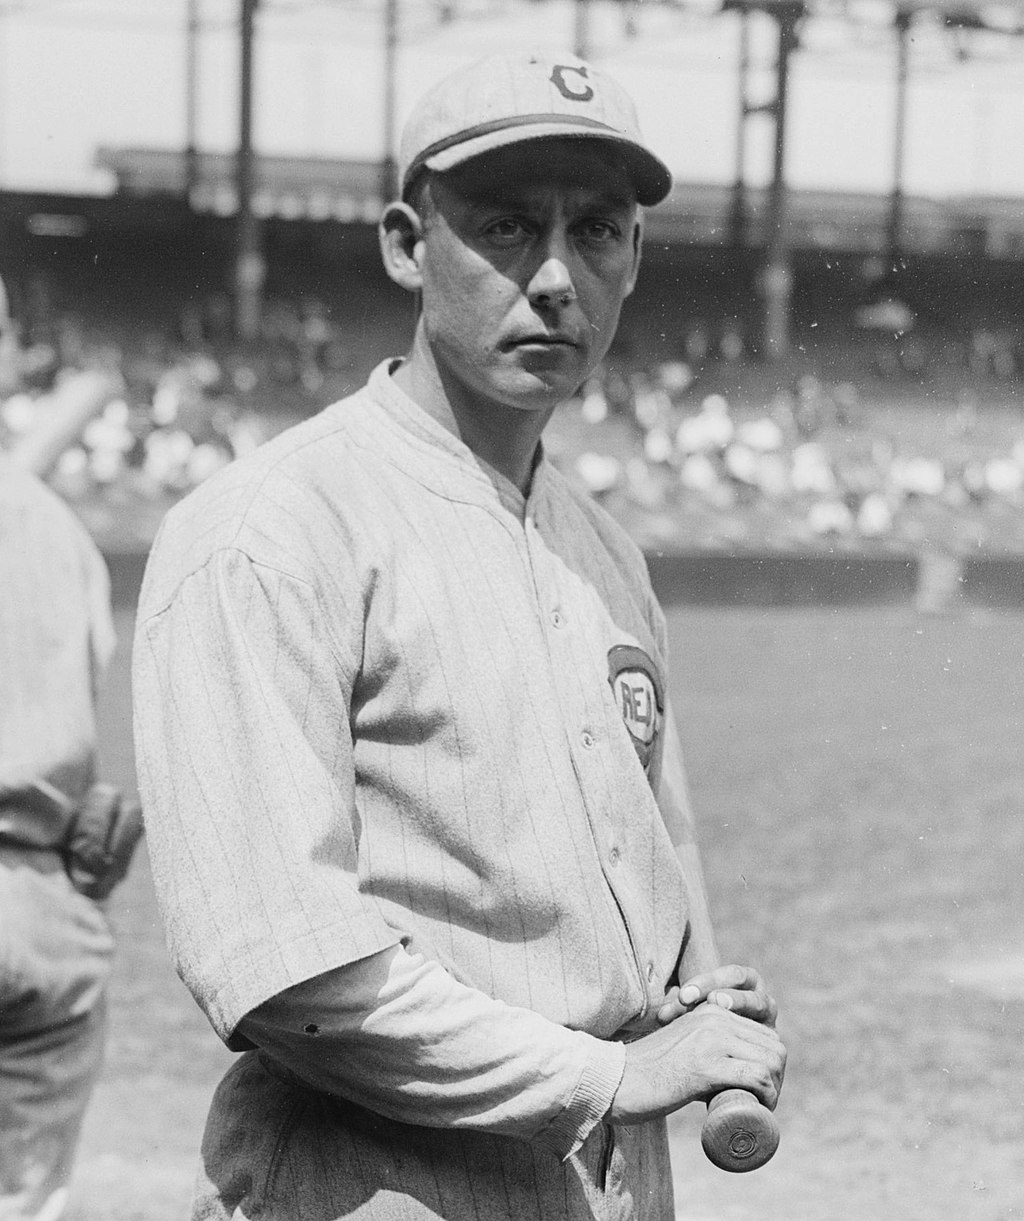 Edd Roush – Baseball Hall of Fame